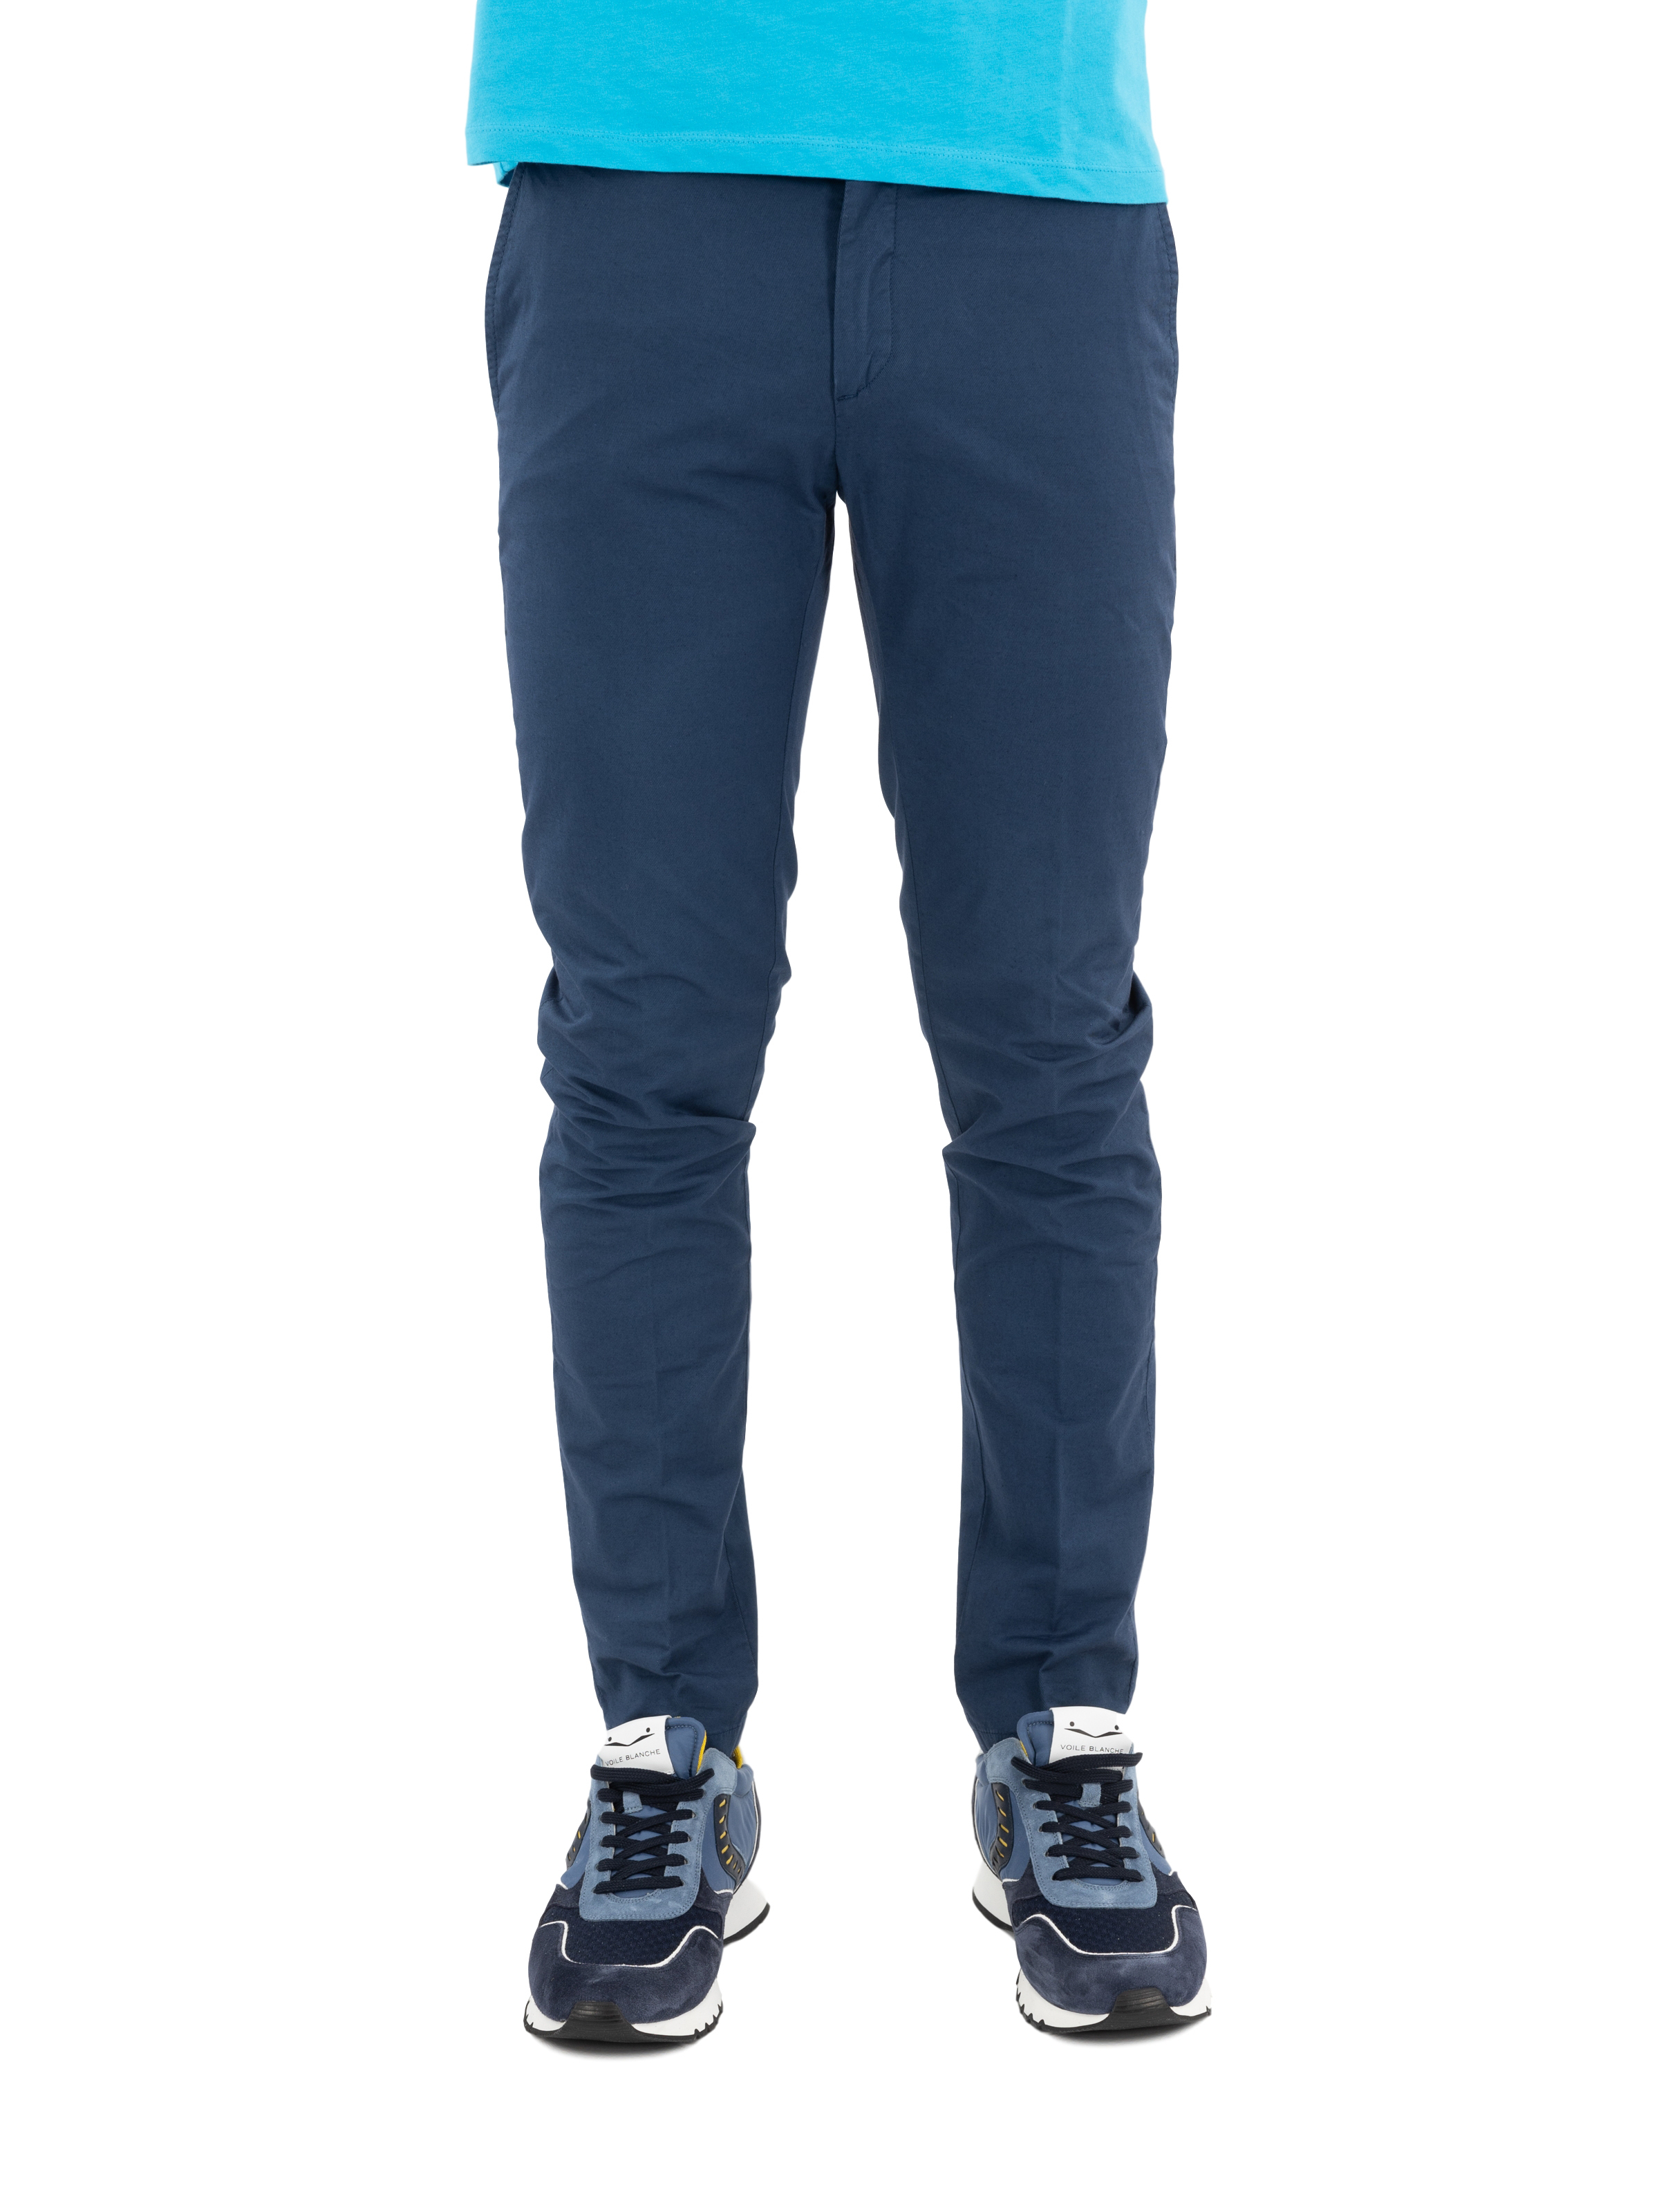 Department Five Pantalone U18P02 T1804